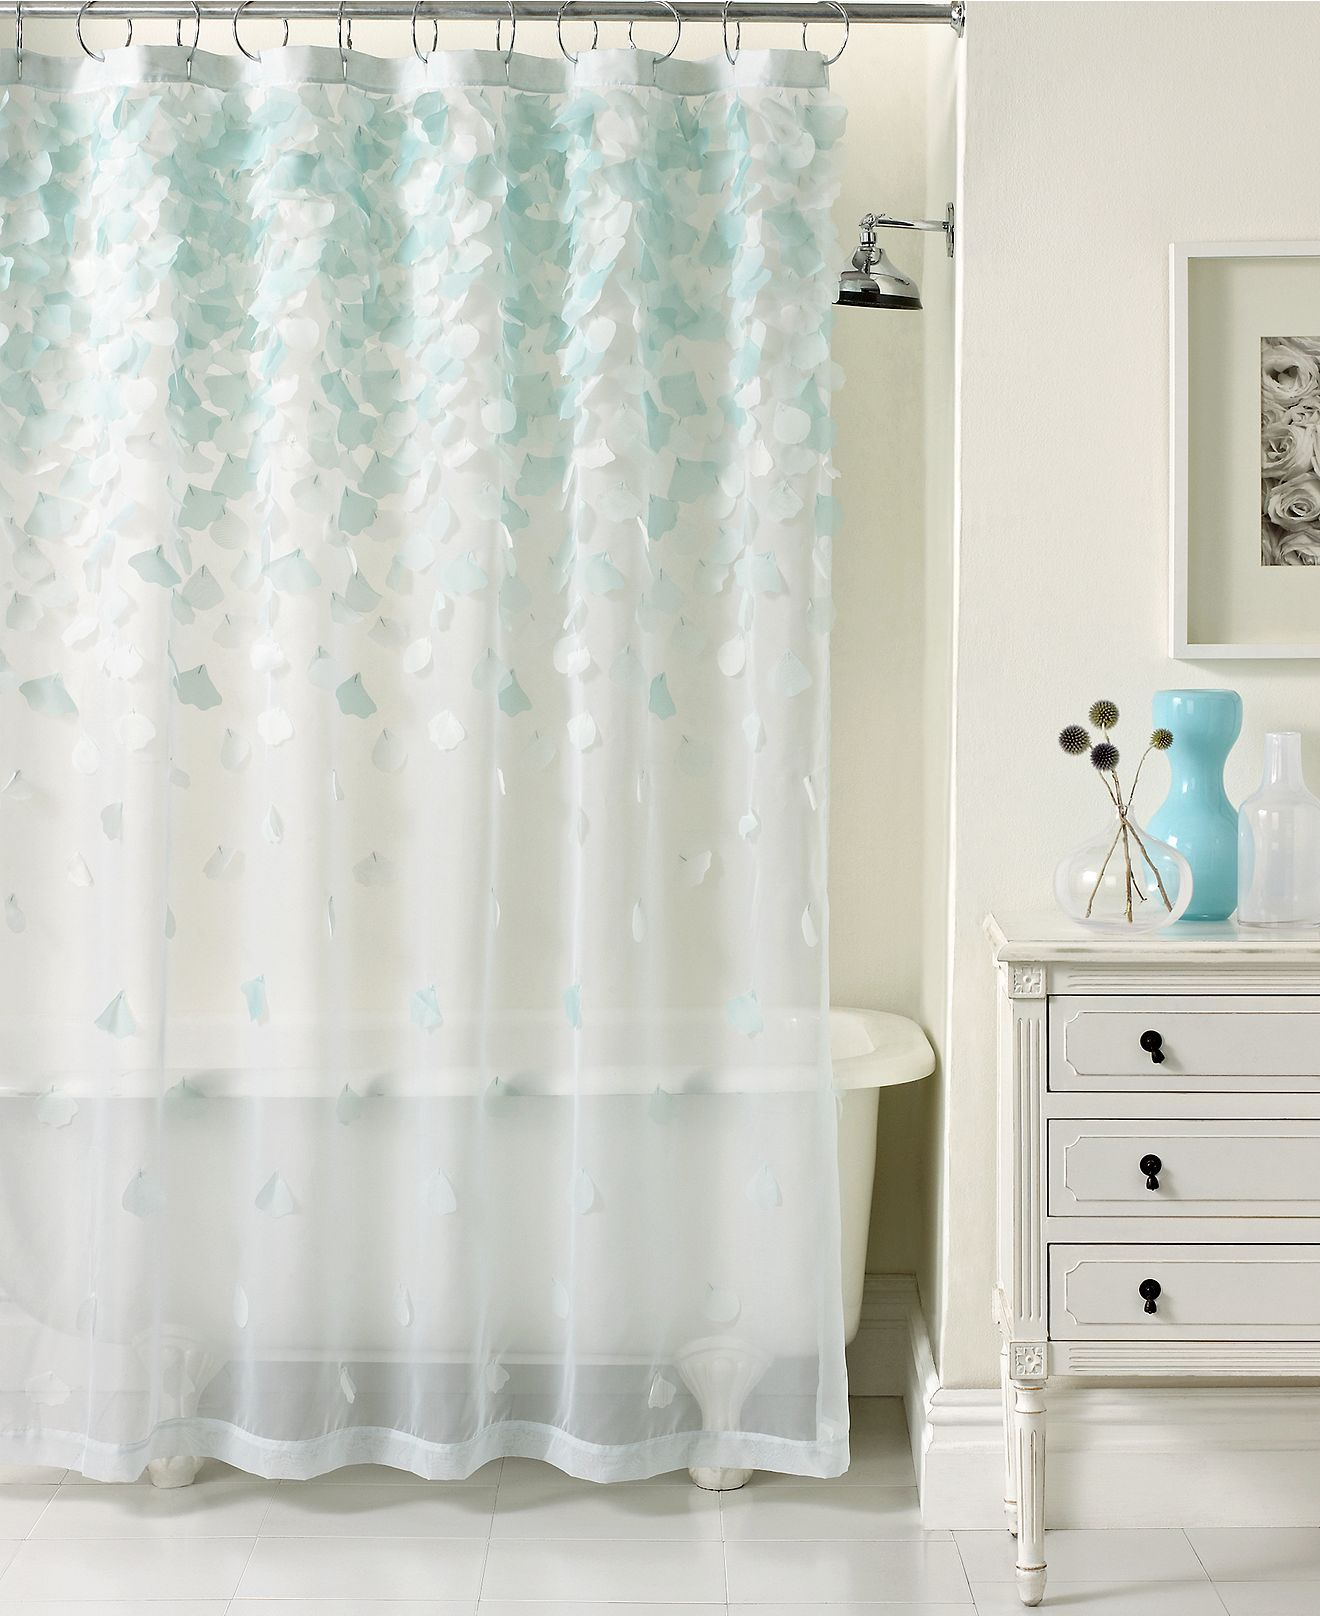 macy's shower curtains